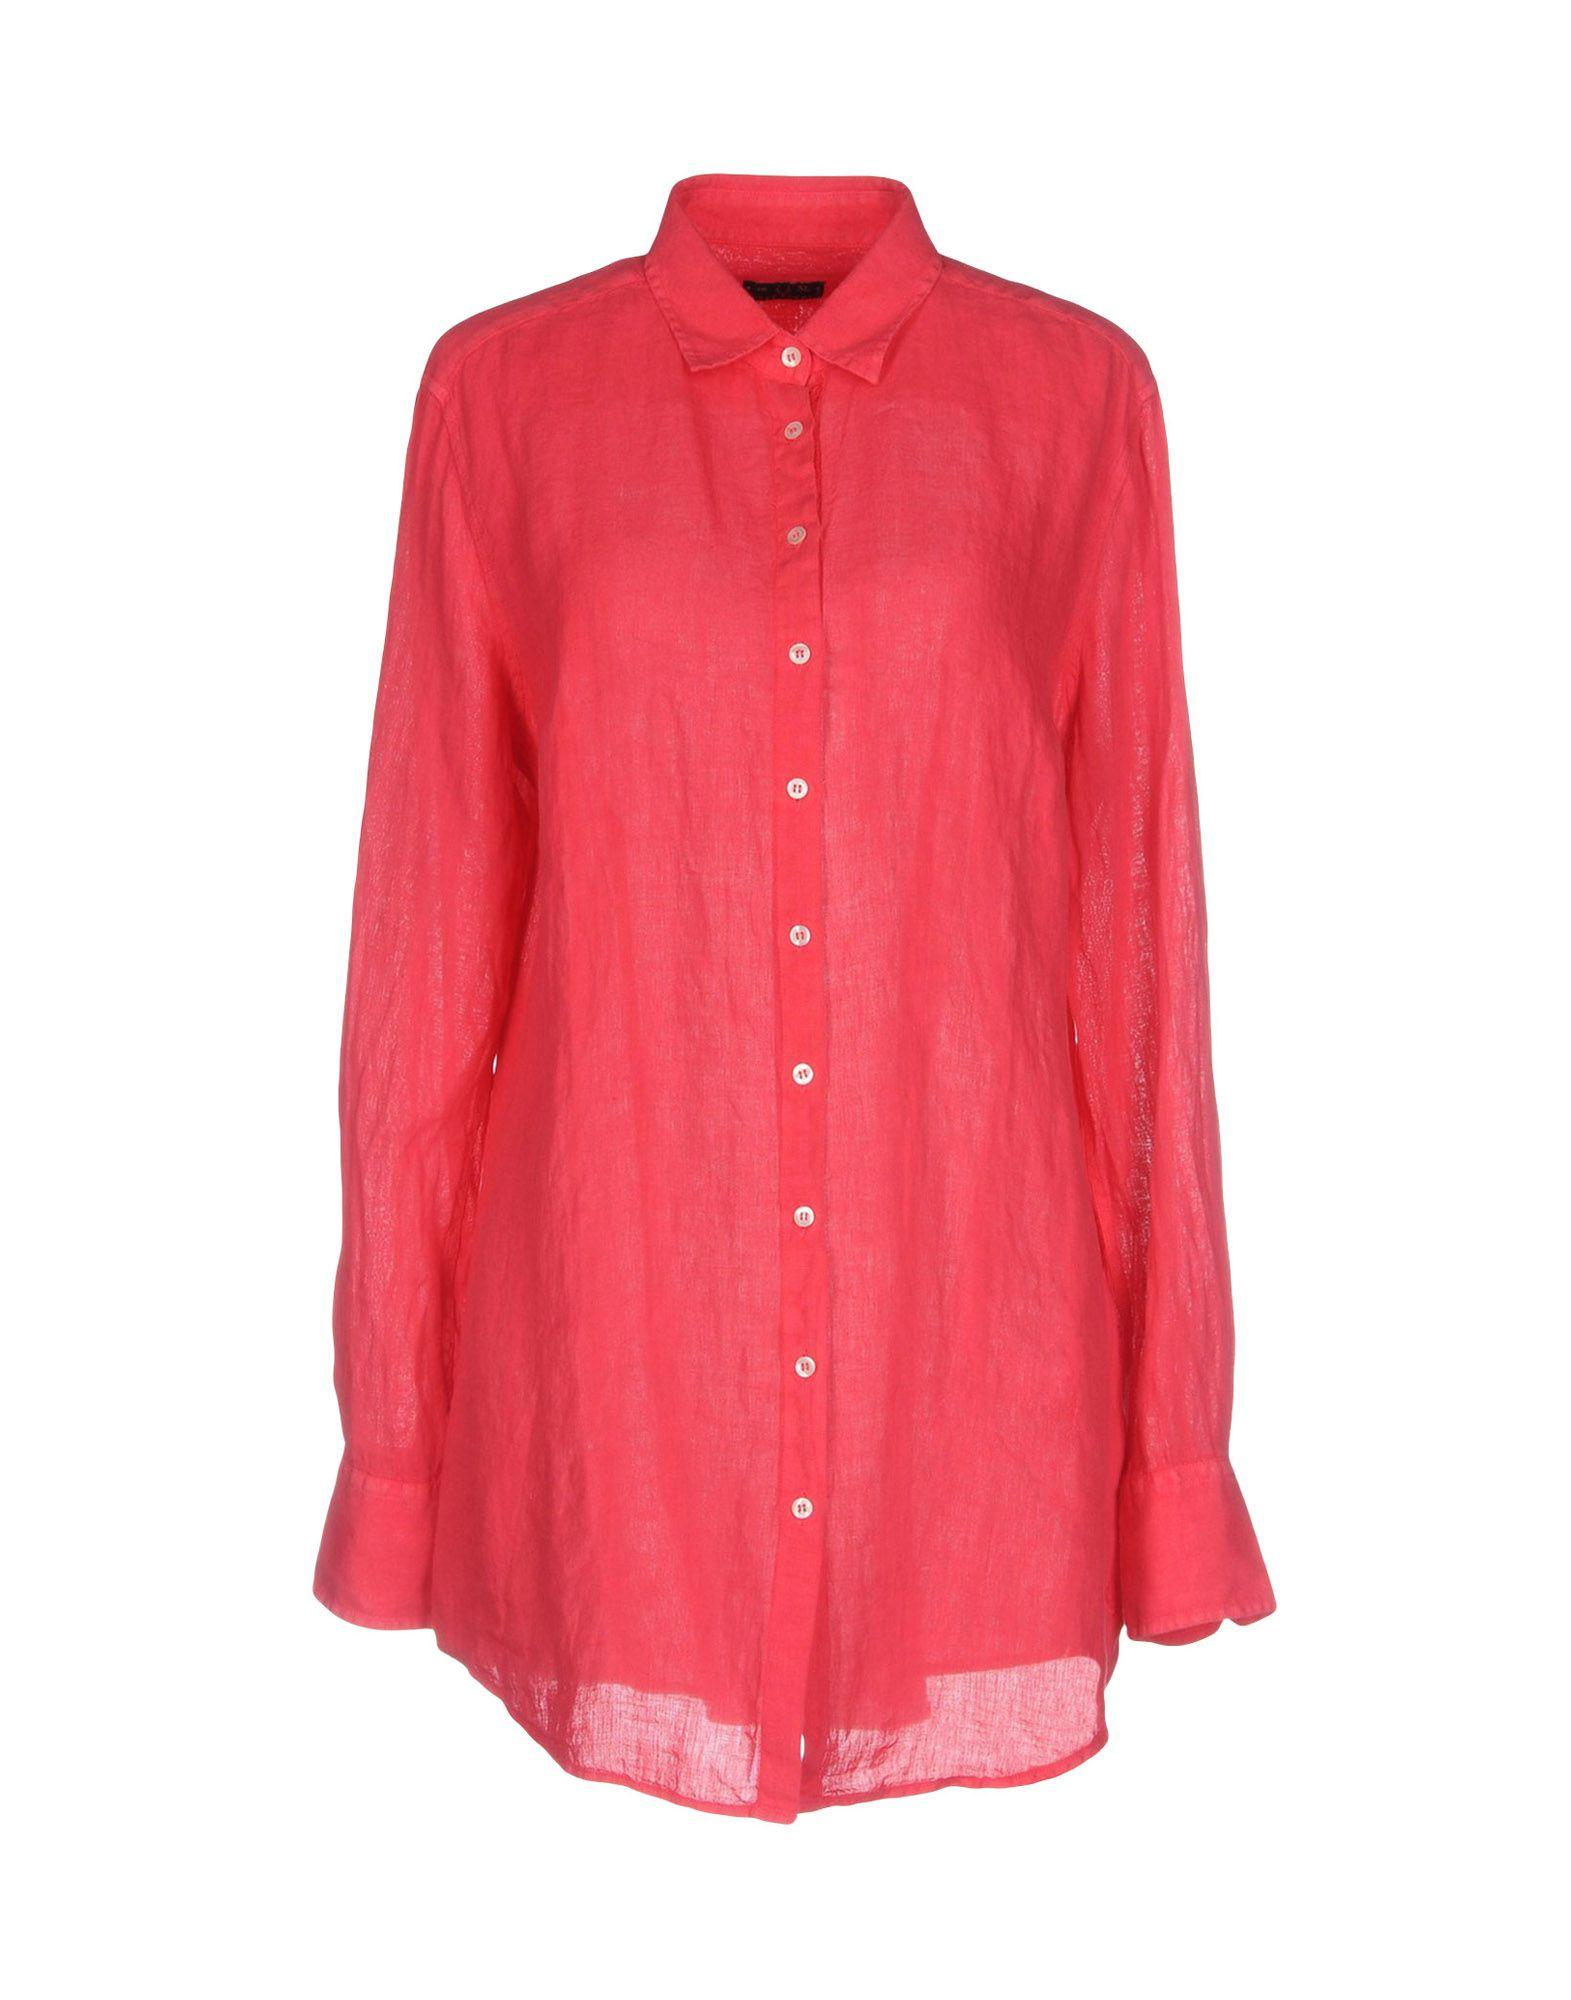 Fred Perry Shirts In Coral